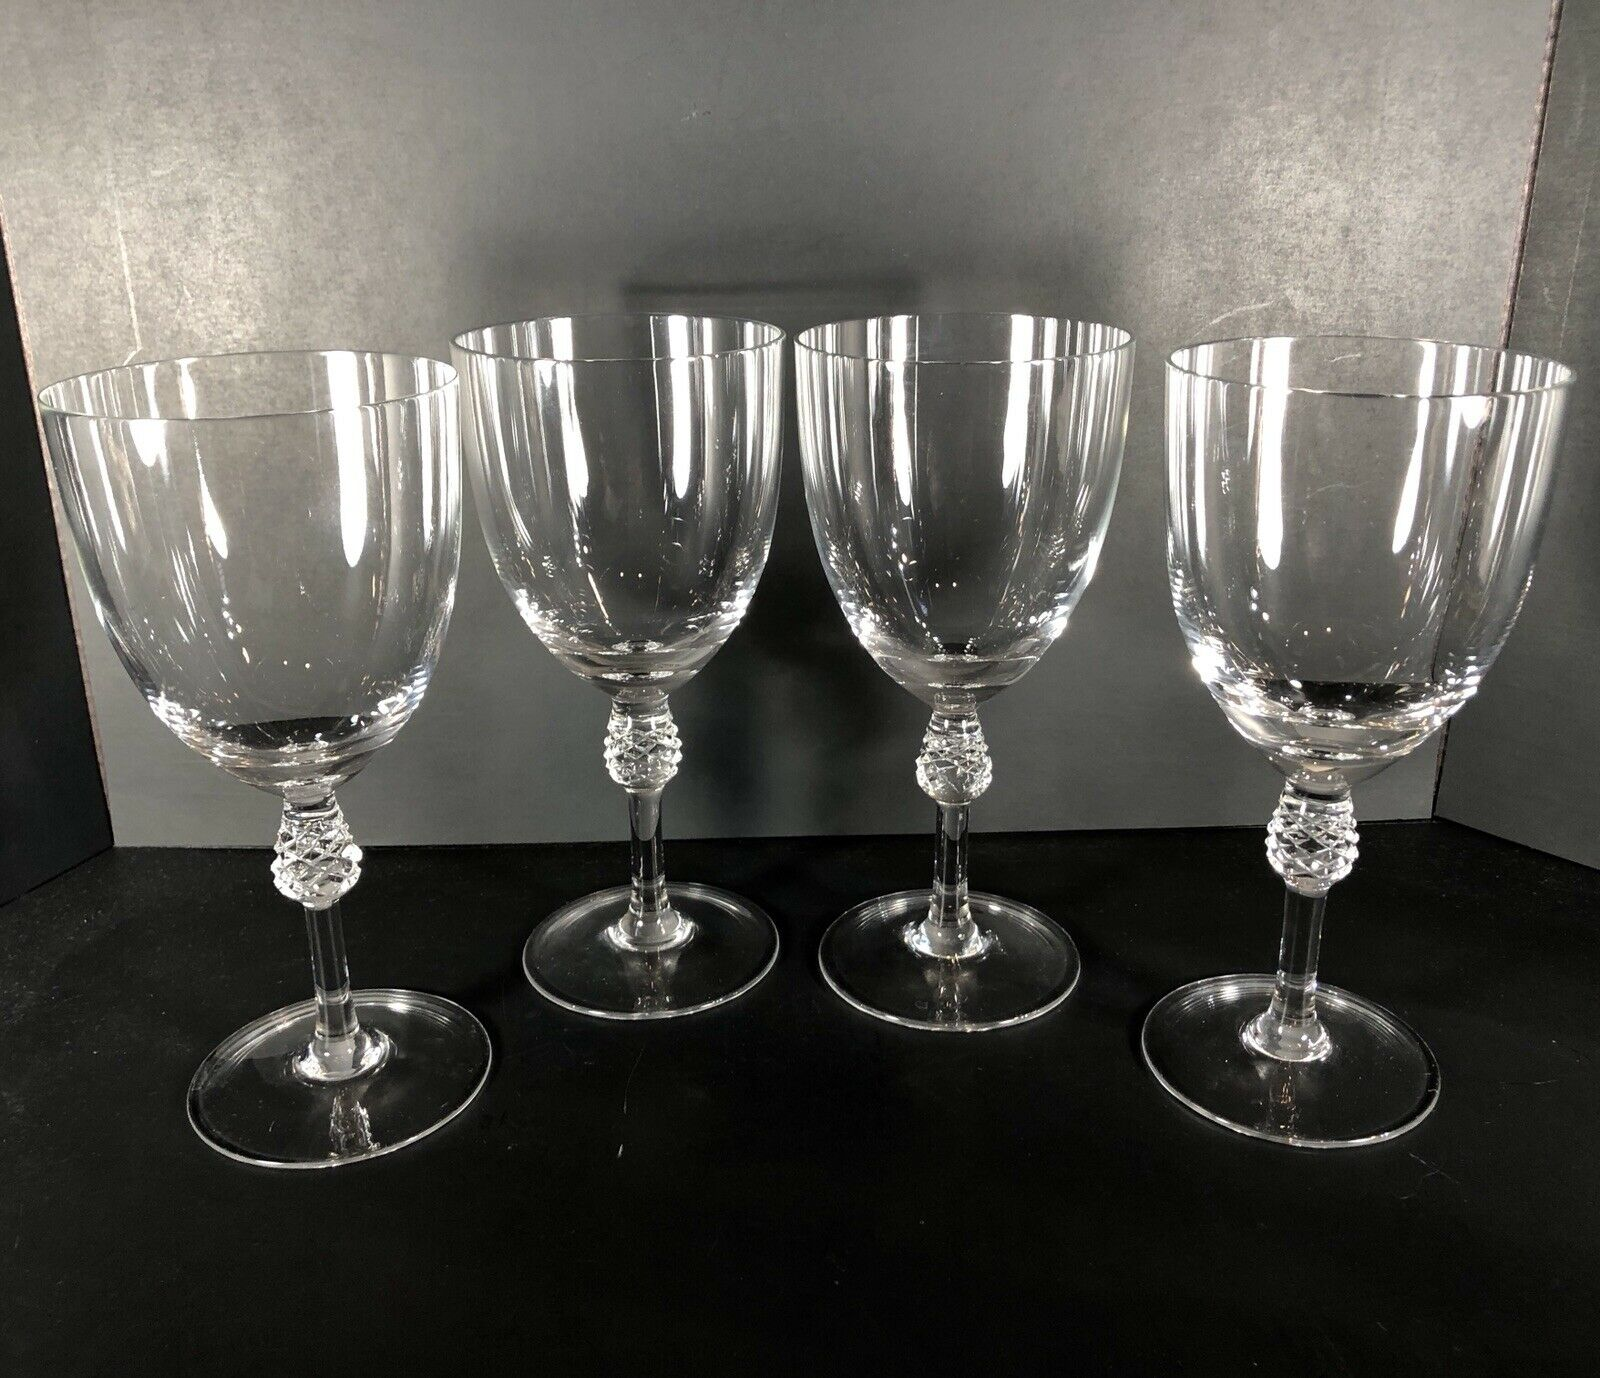 4 Water  Wine glasses with Pineapple   ball stem set Large 16 oz bowl